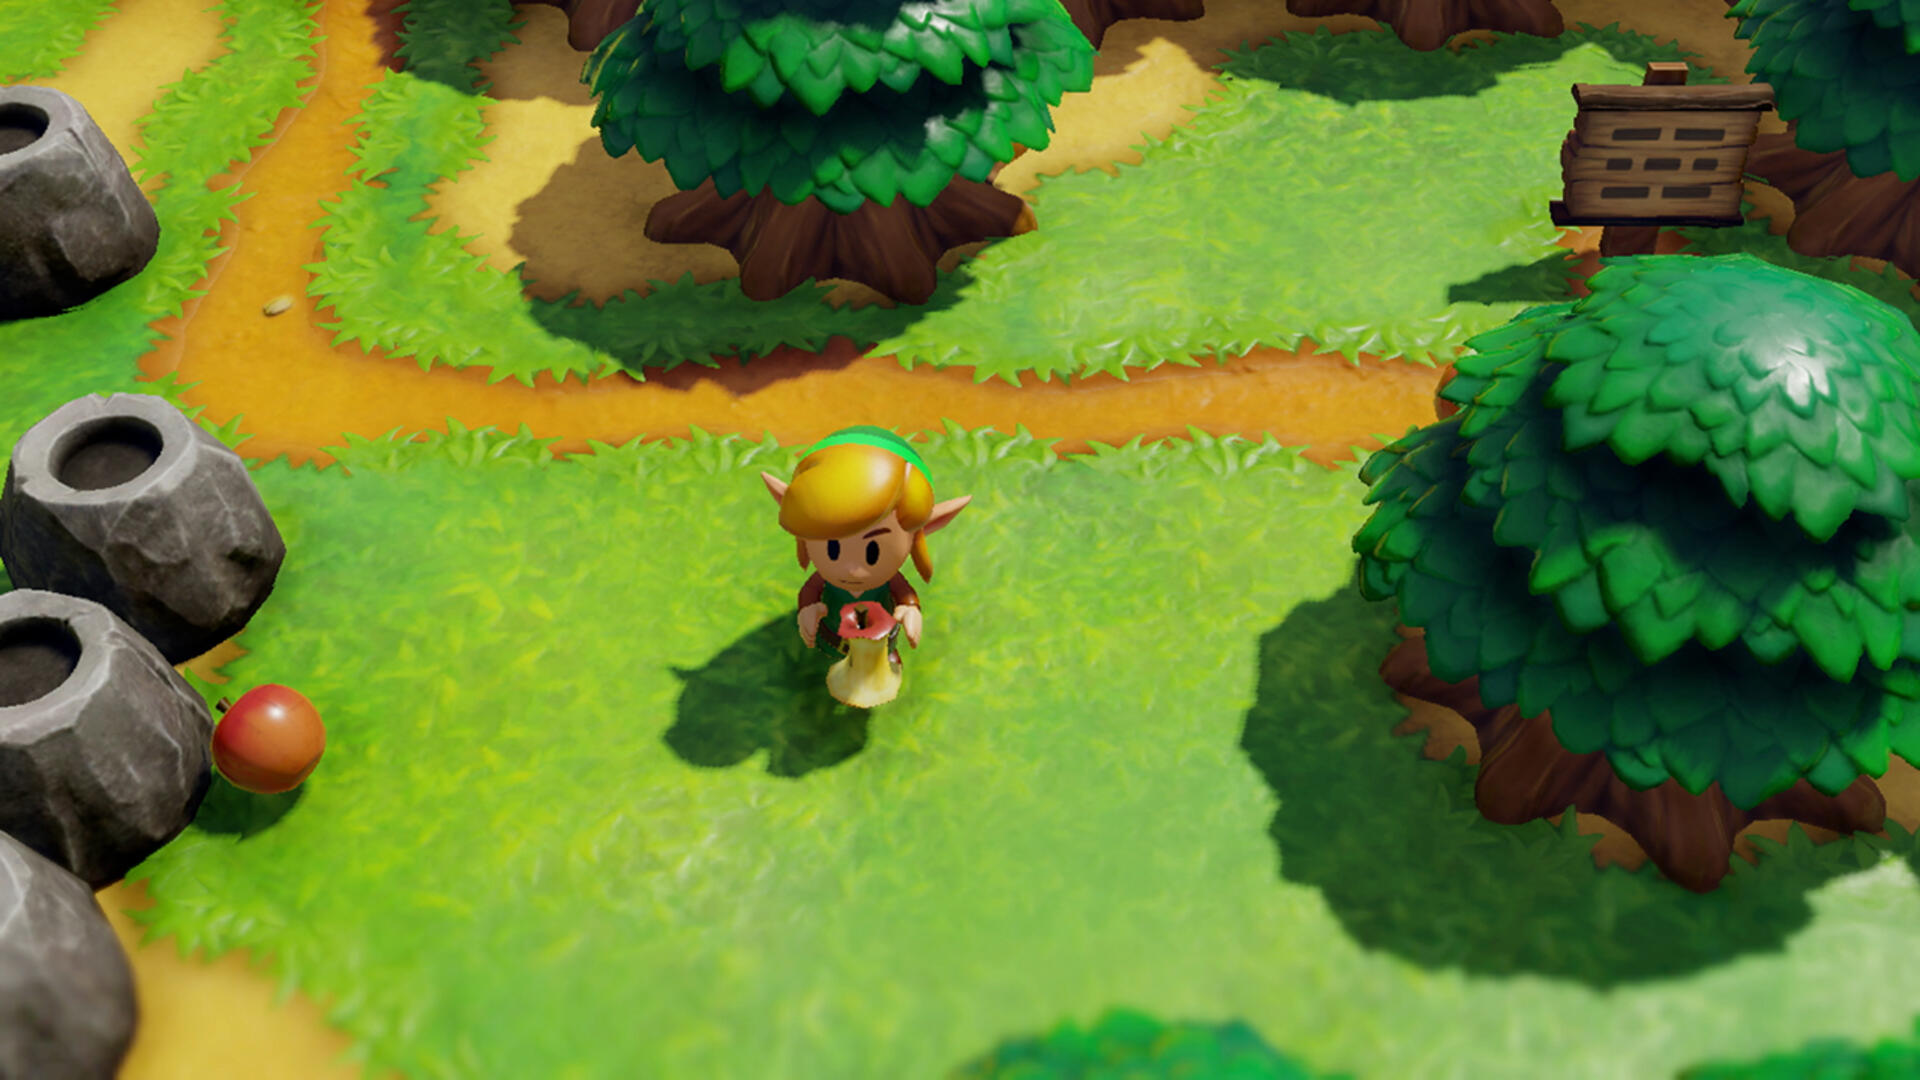 Zelda Link's Awakening Switch Release Date, Gameplay, Amiibo, Limited Edition - Everything We Know